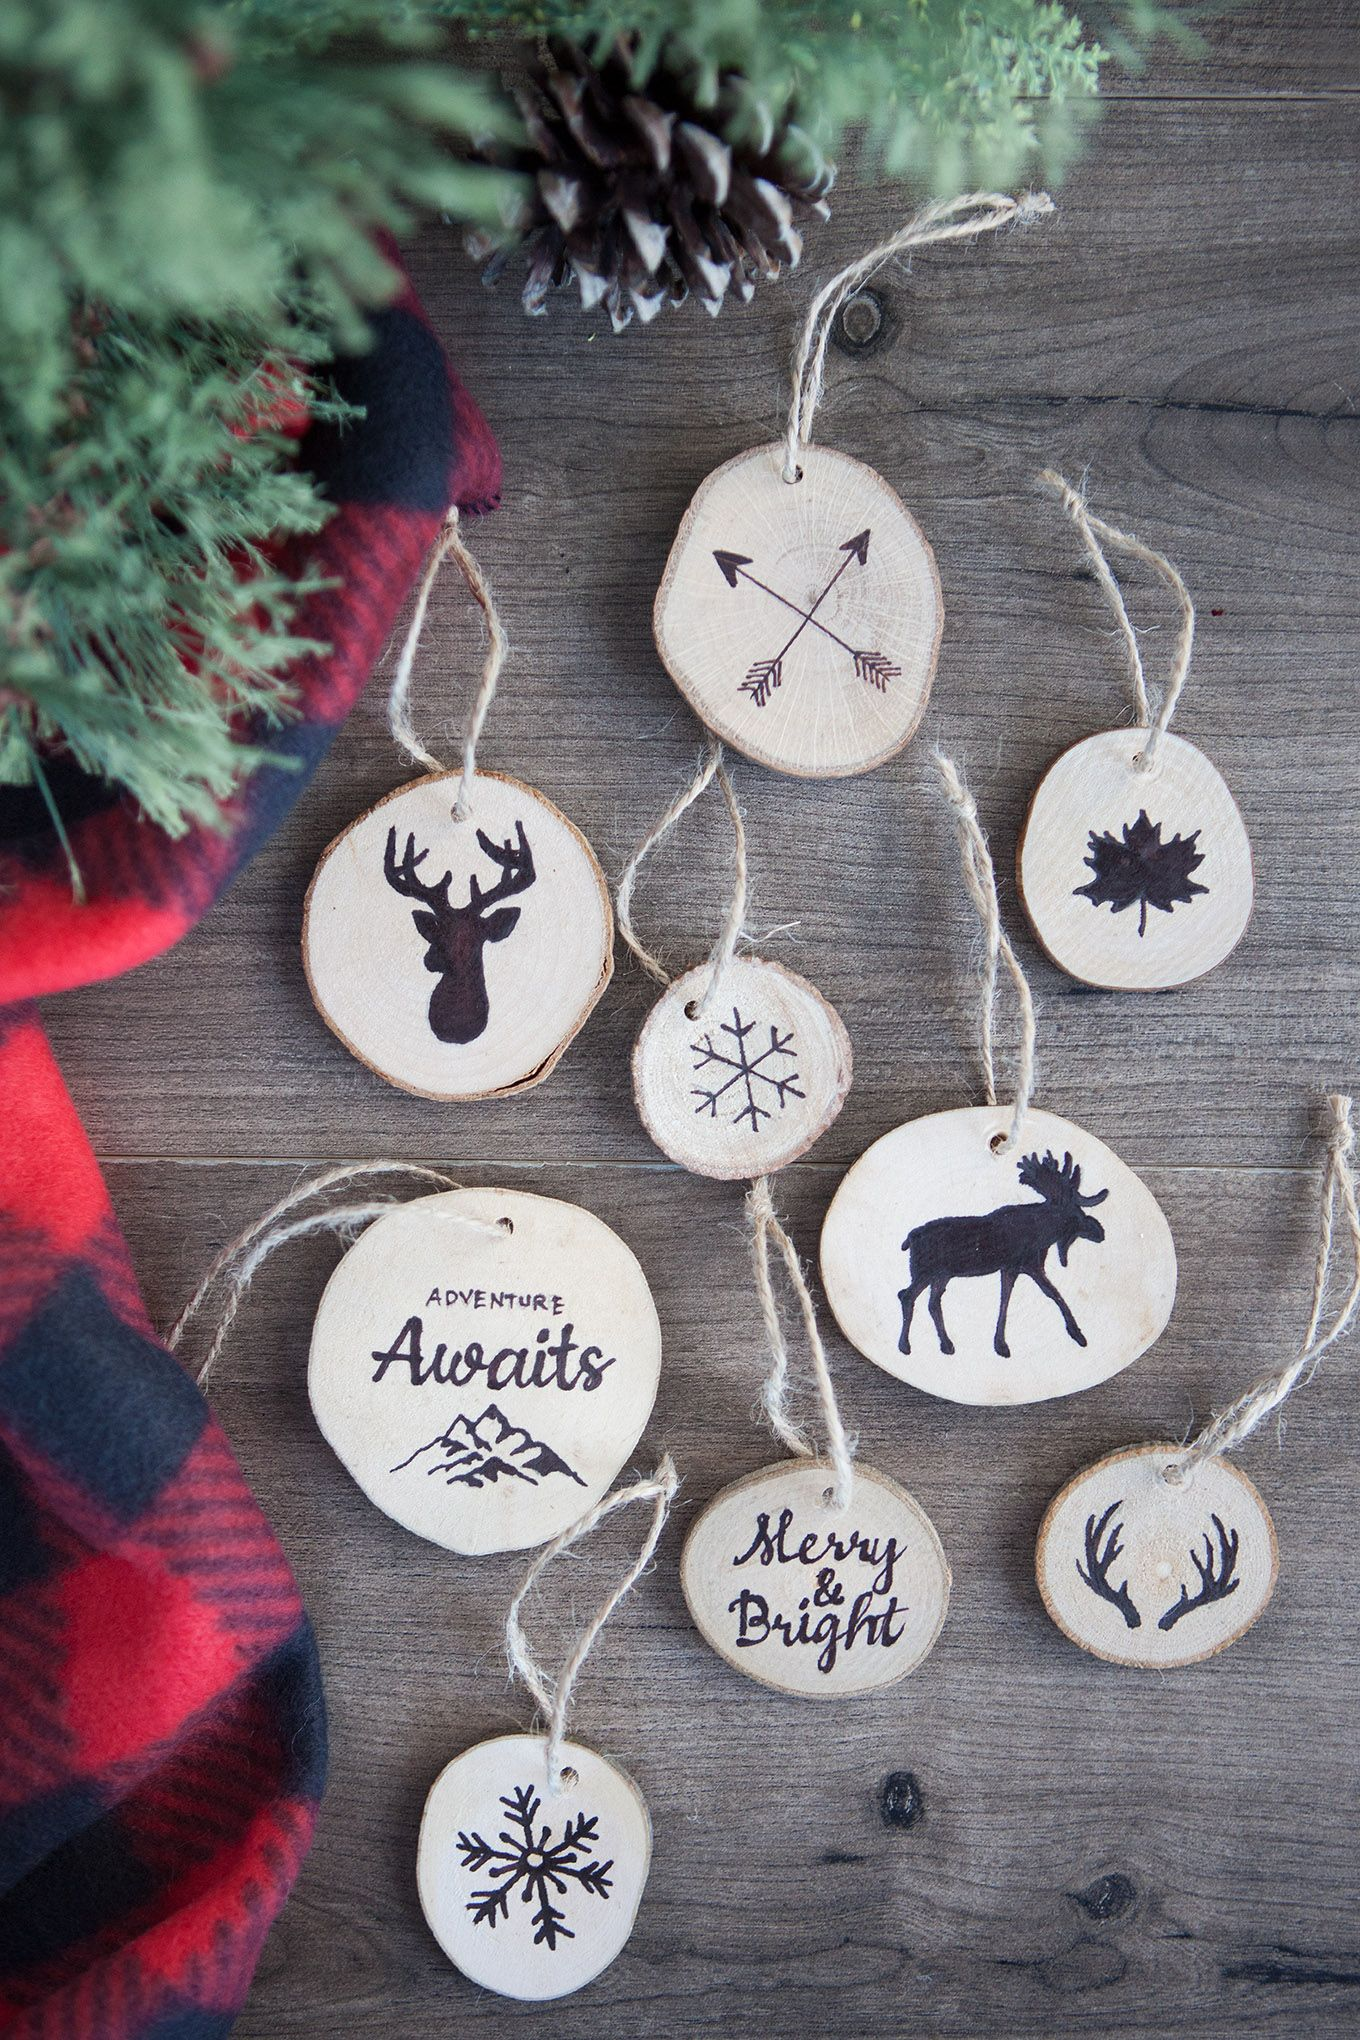 Faux Wood Burned Christmas Tree Ornaments Farmhouse Christmas Ornaments Diy Christmas Ornaments Rustic Christmas Ornaments